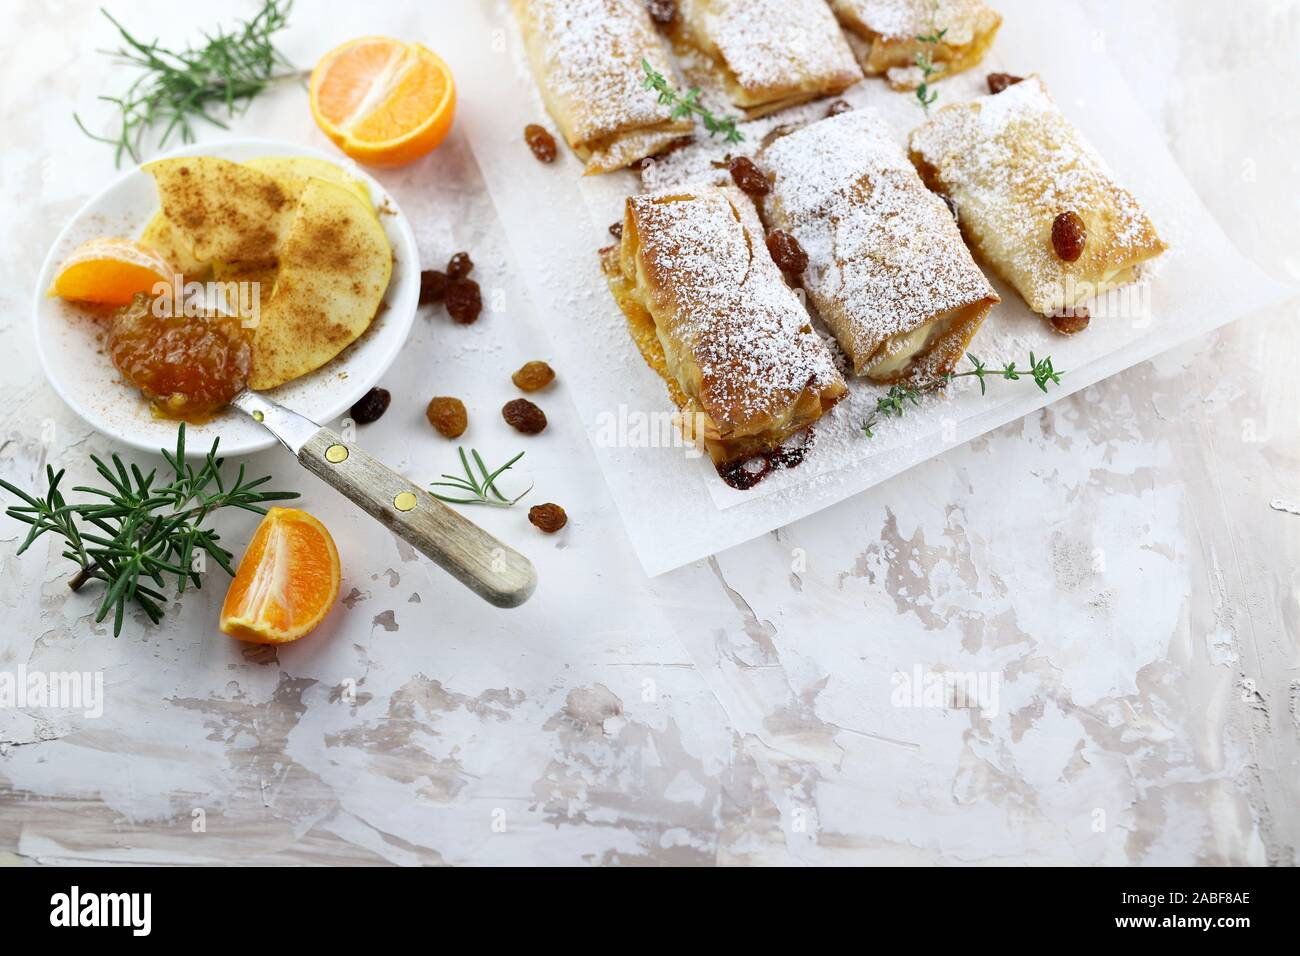 Top view of homemade phyllo dough rolls with apples and orange marmalade. White background with sultanas. Stock Photo